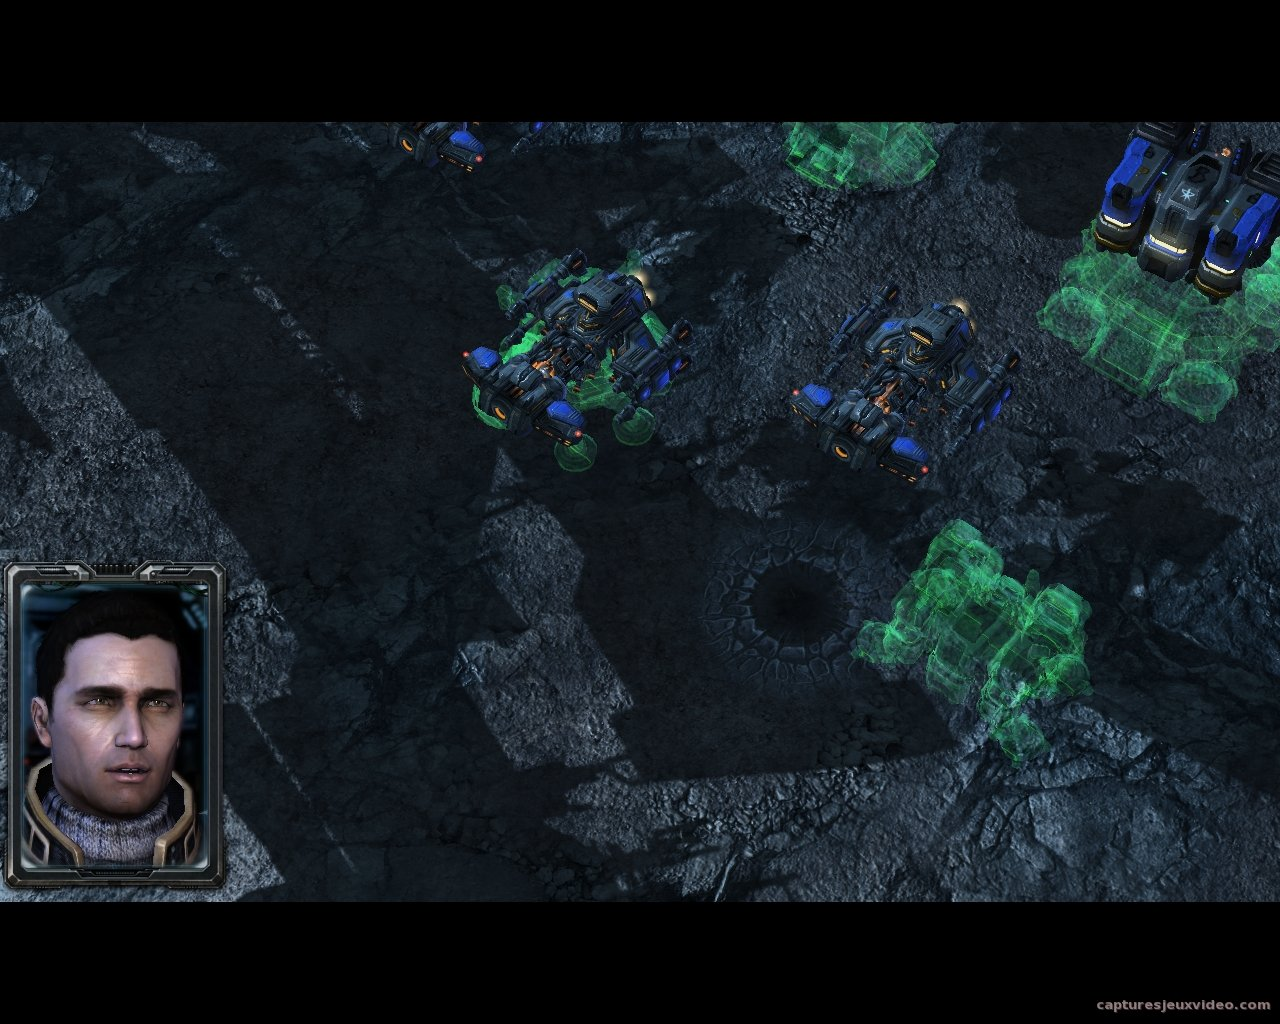 starcraft 2 capture ecran 0153